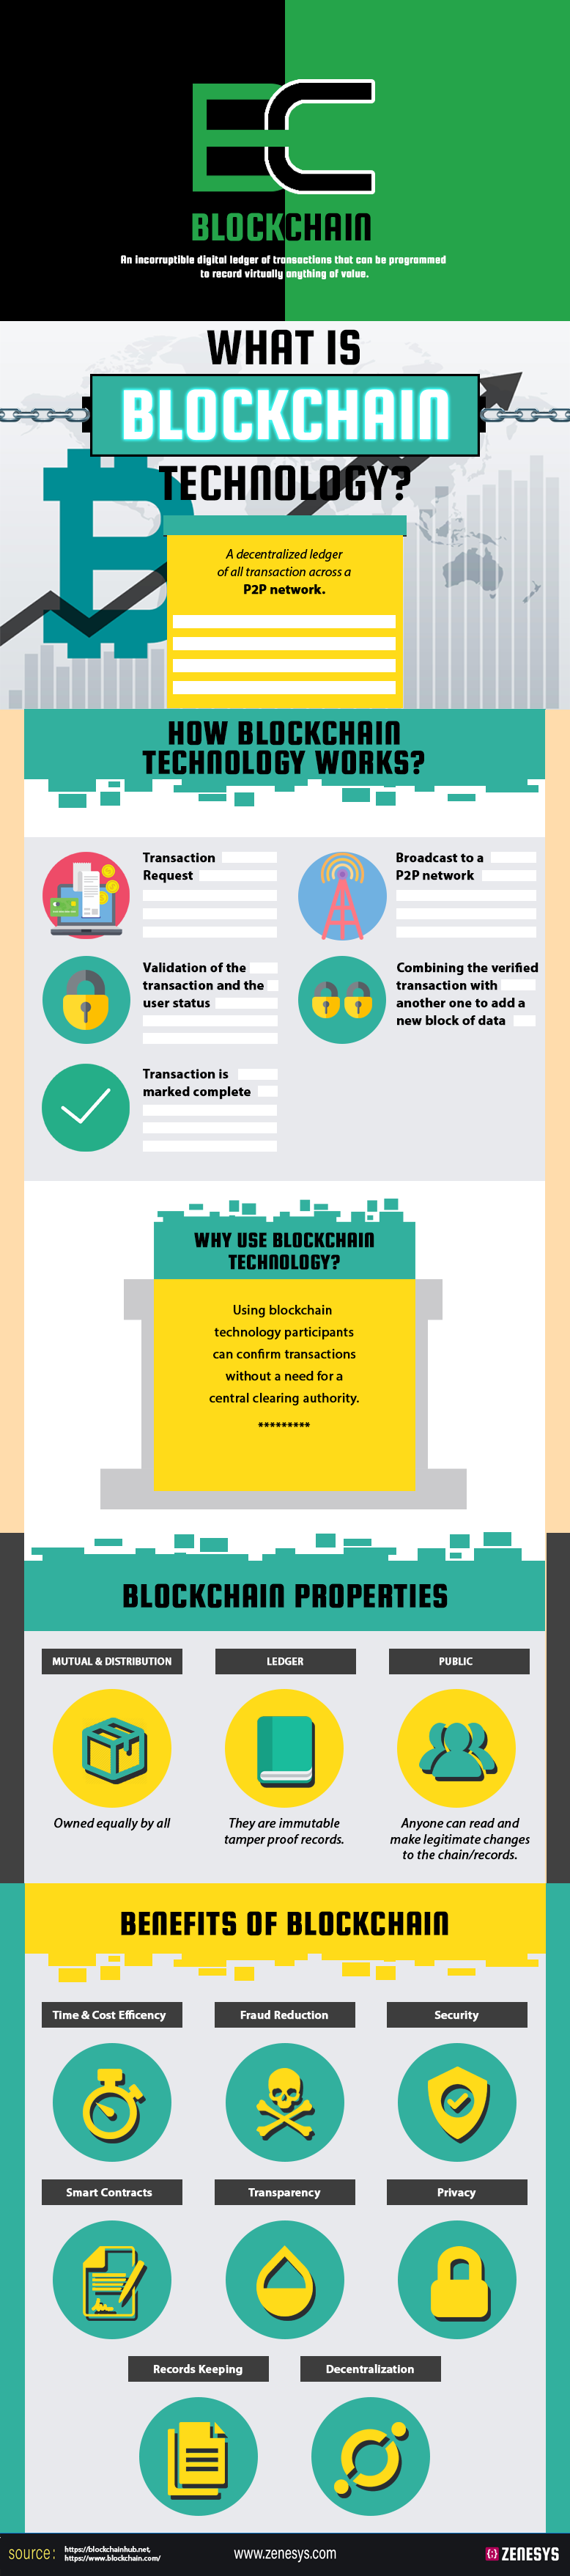 What is Blockchain Technology? | An Infographic